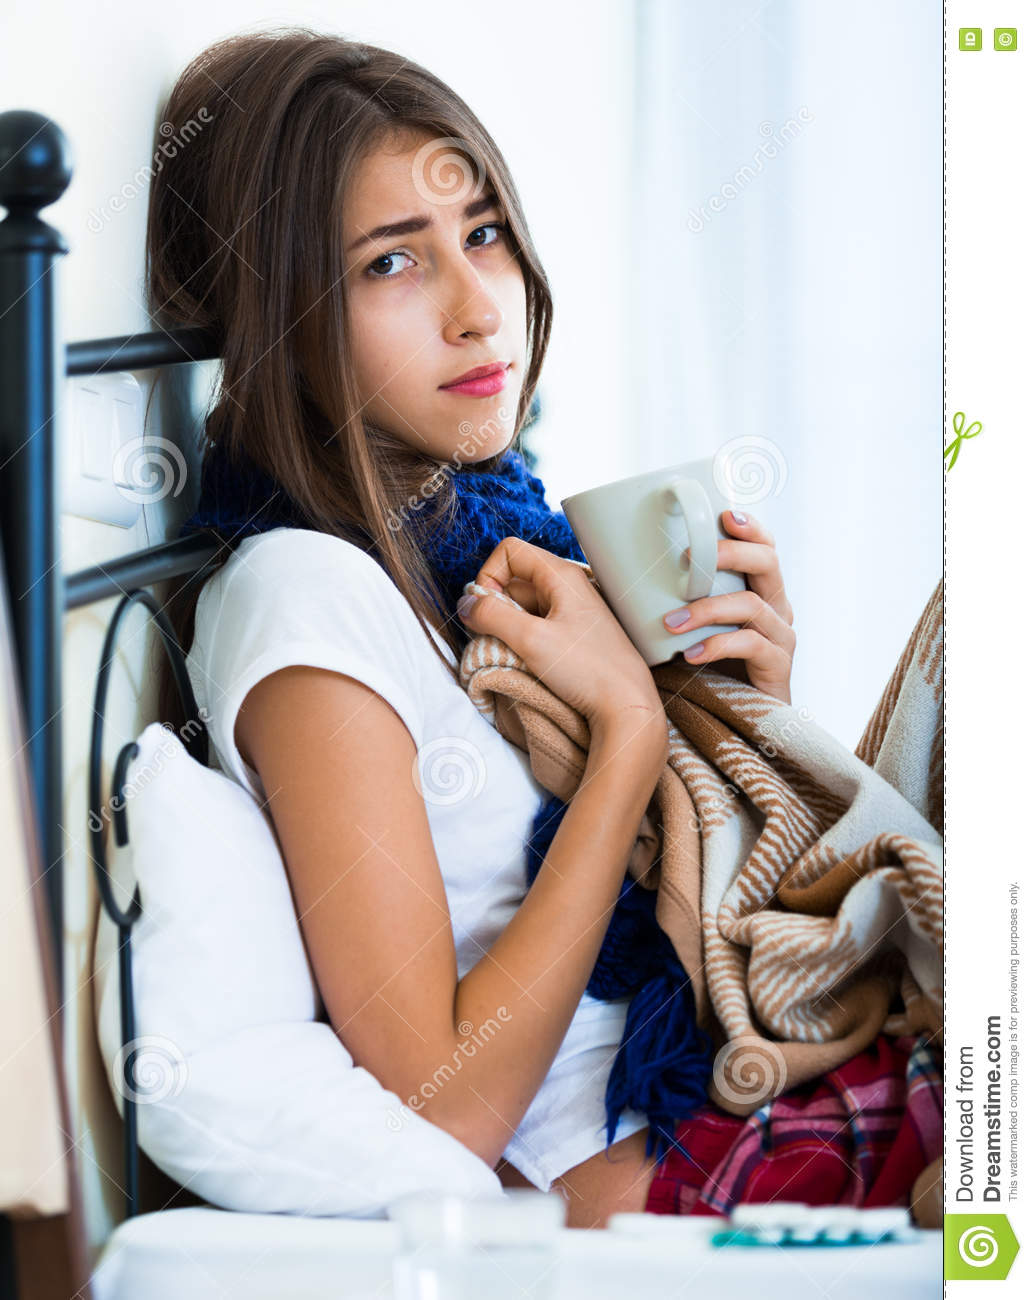 Download Sick Teenage Girl With Hot Tea And Medication Indoors Stock Photo Image Of Pills